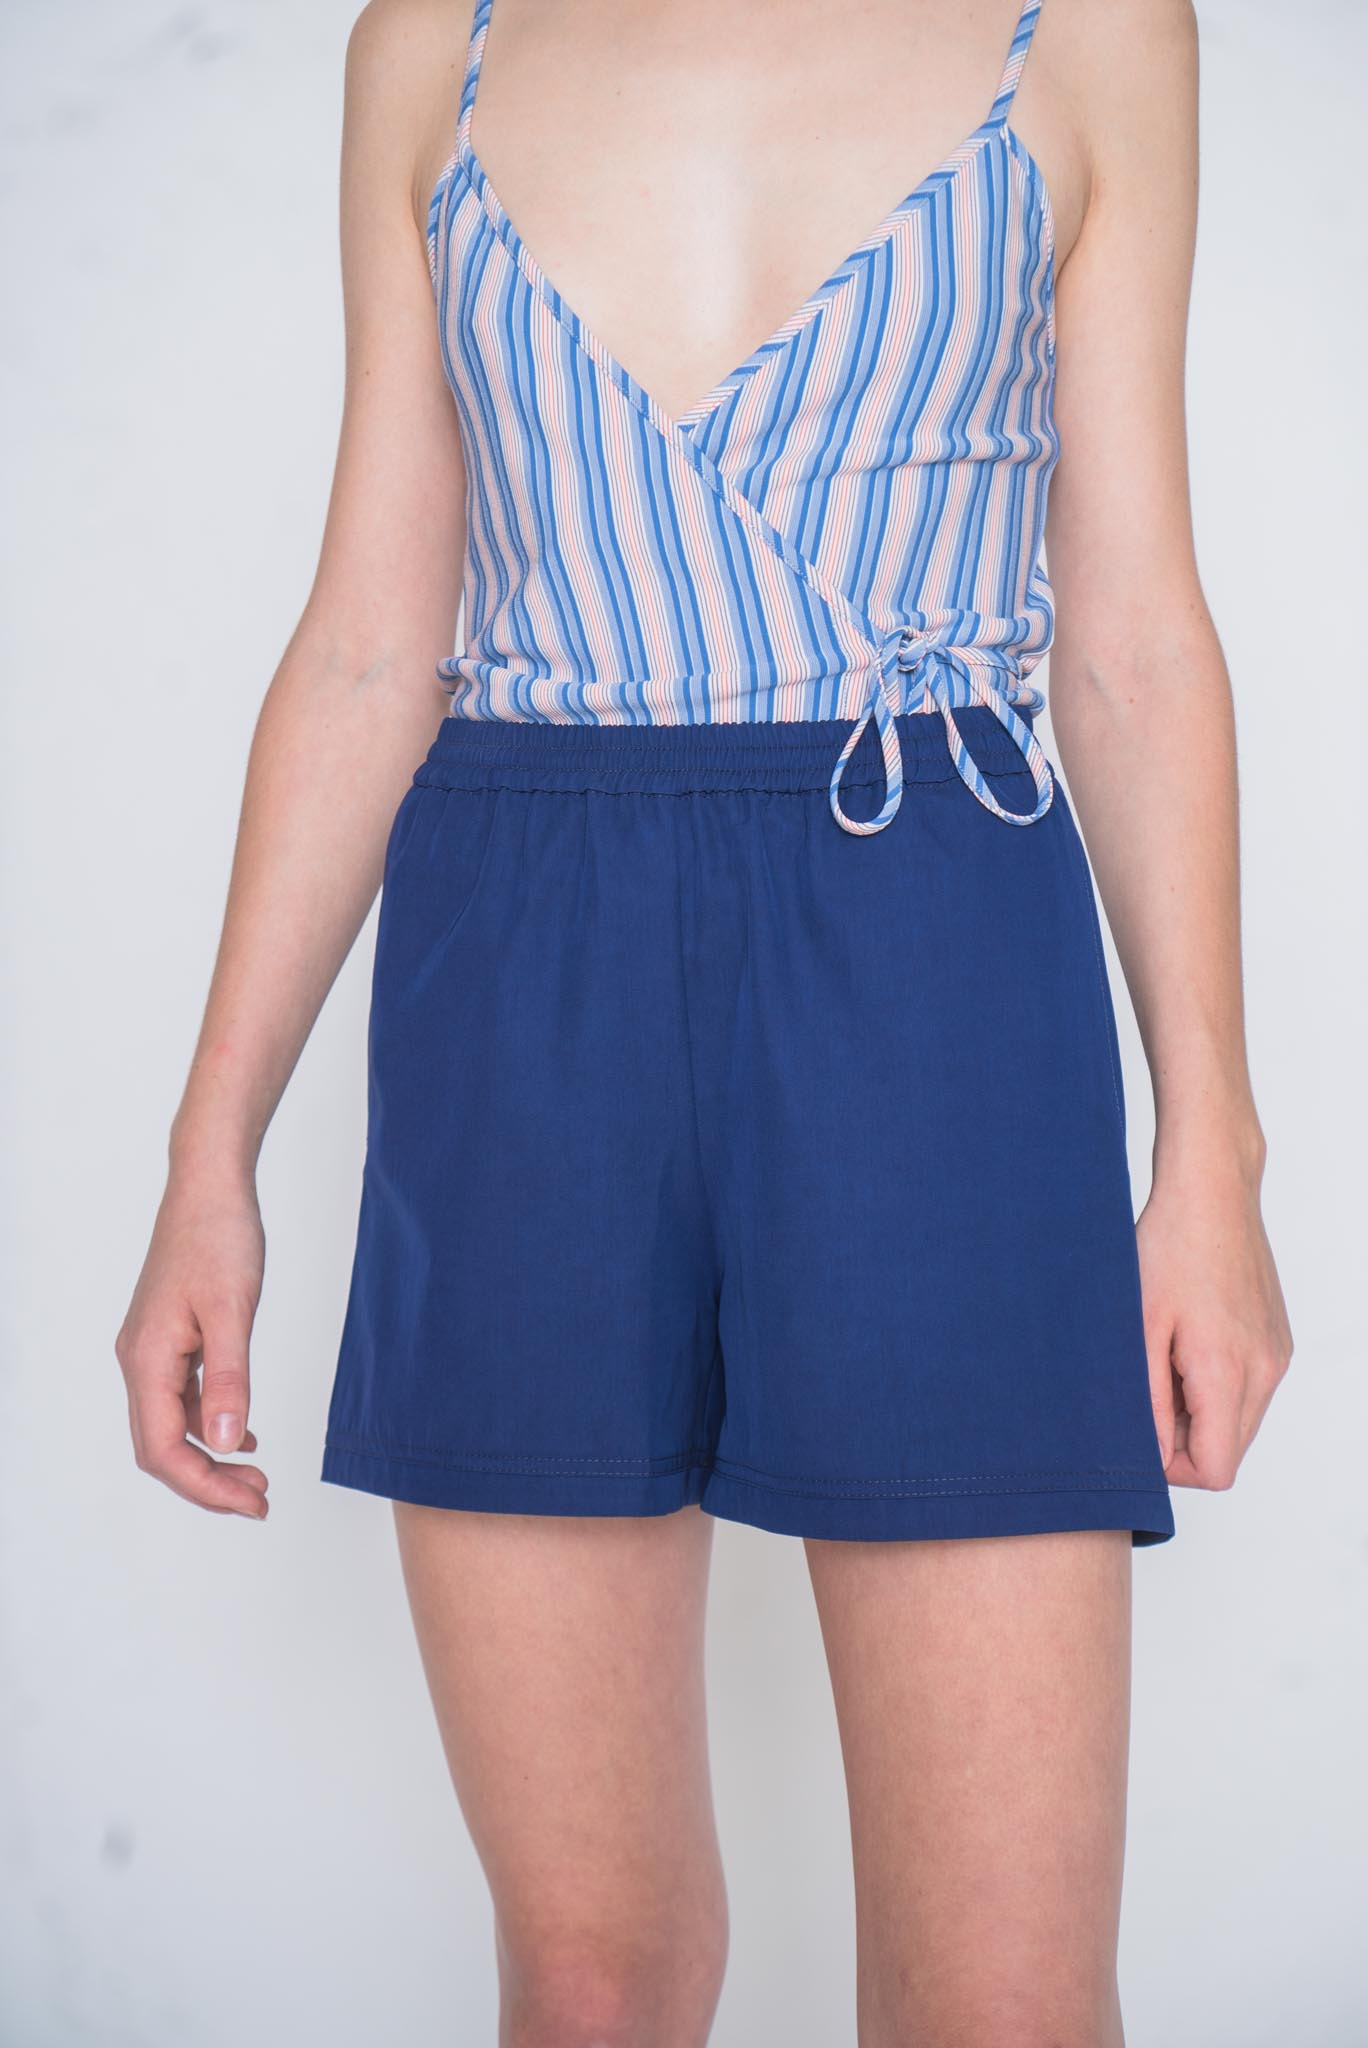 Antor Shorts